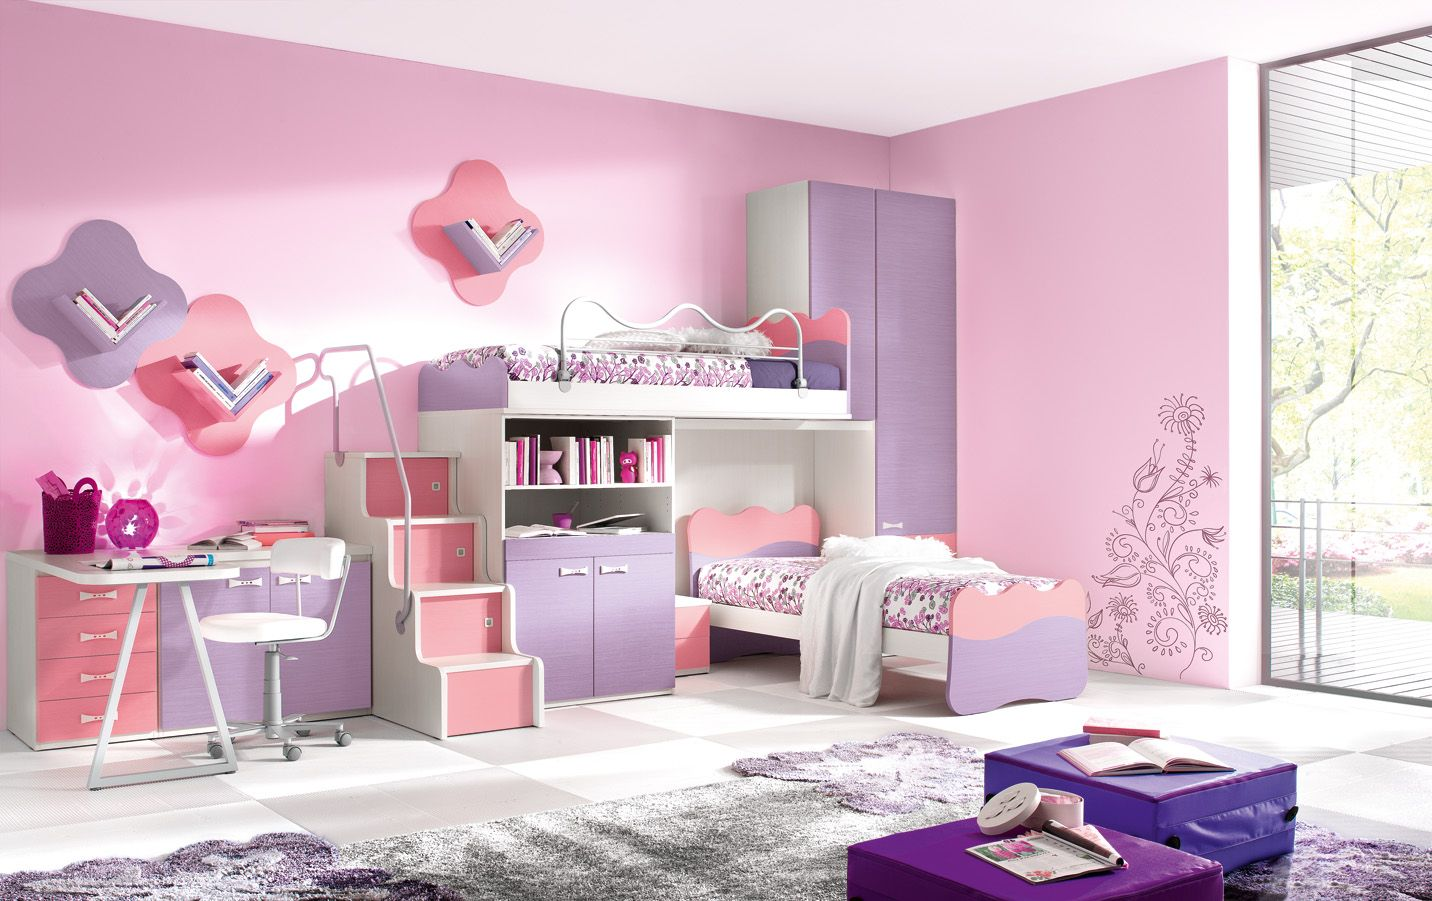 Wall Decor For Kids Room Decorating Ideas For Kids Bedroom Design ...